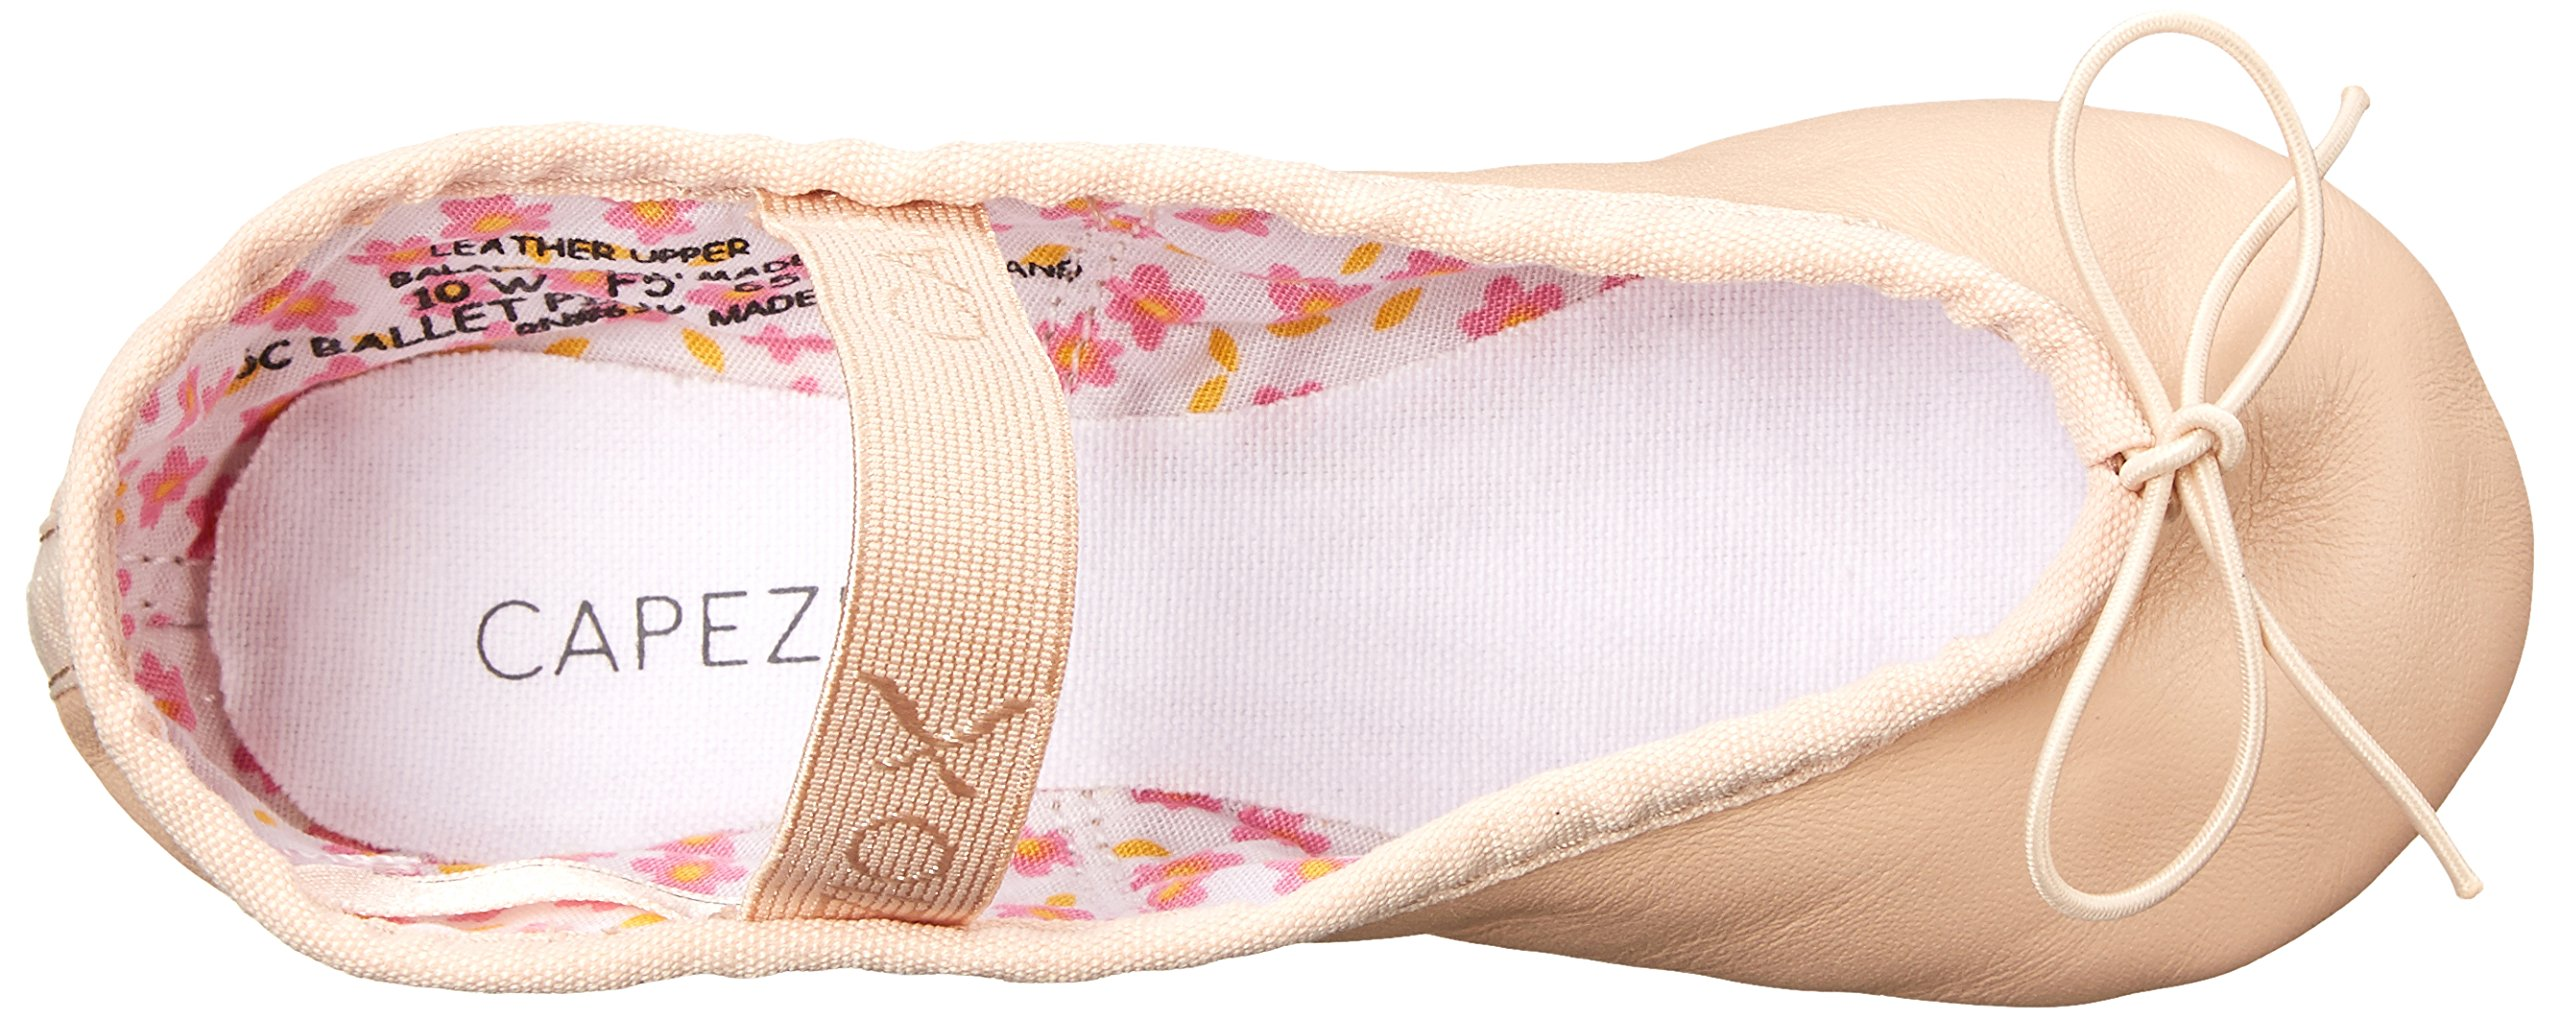 Capezio Daisy 205 Ballet Shoe (Toddler/Little Kid),Ballet Pink,8 M US Toddler by Capezio (Image #9)